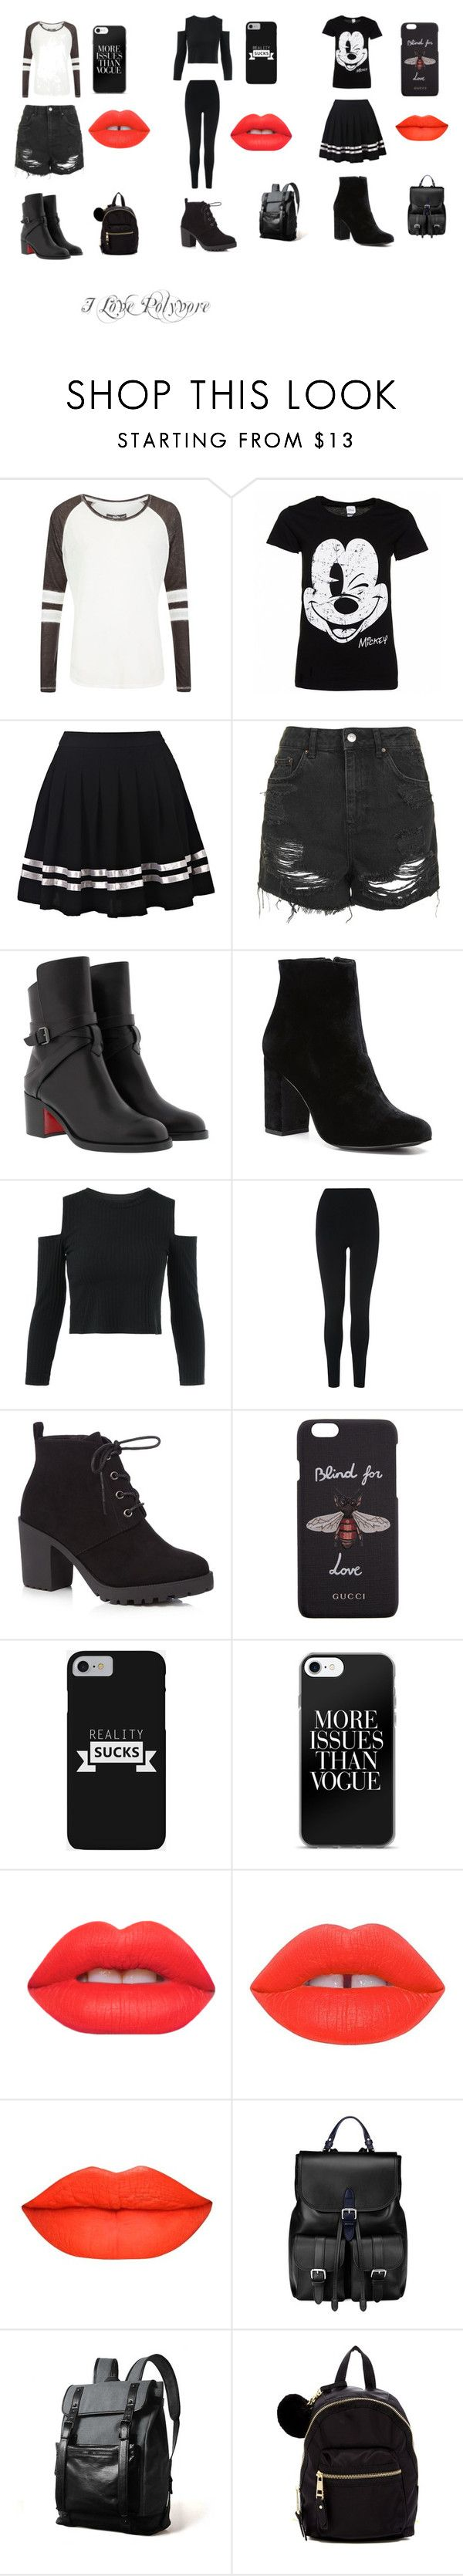 """which outfis"" by unique12-132 on Polyvore featuring Superdry, Disney, Topshop, Christian Louboutin, Witchery, L.K.Bennett, Red Herring, Gucci, Lime Crime and Aspinal of London"